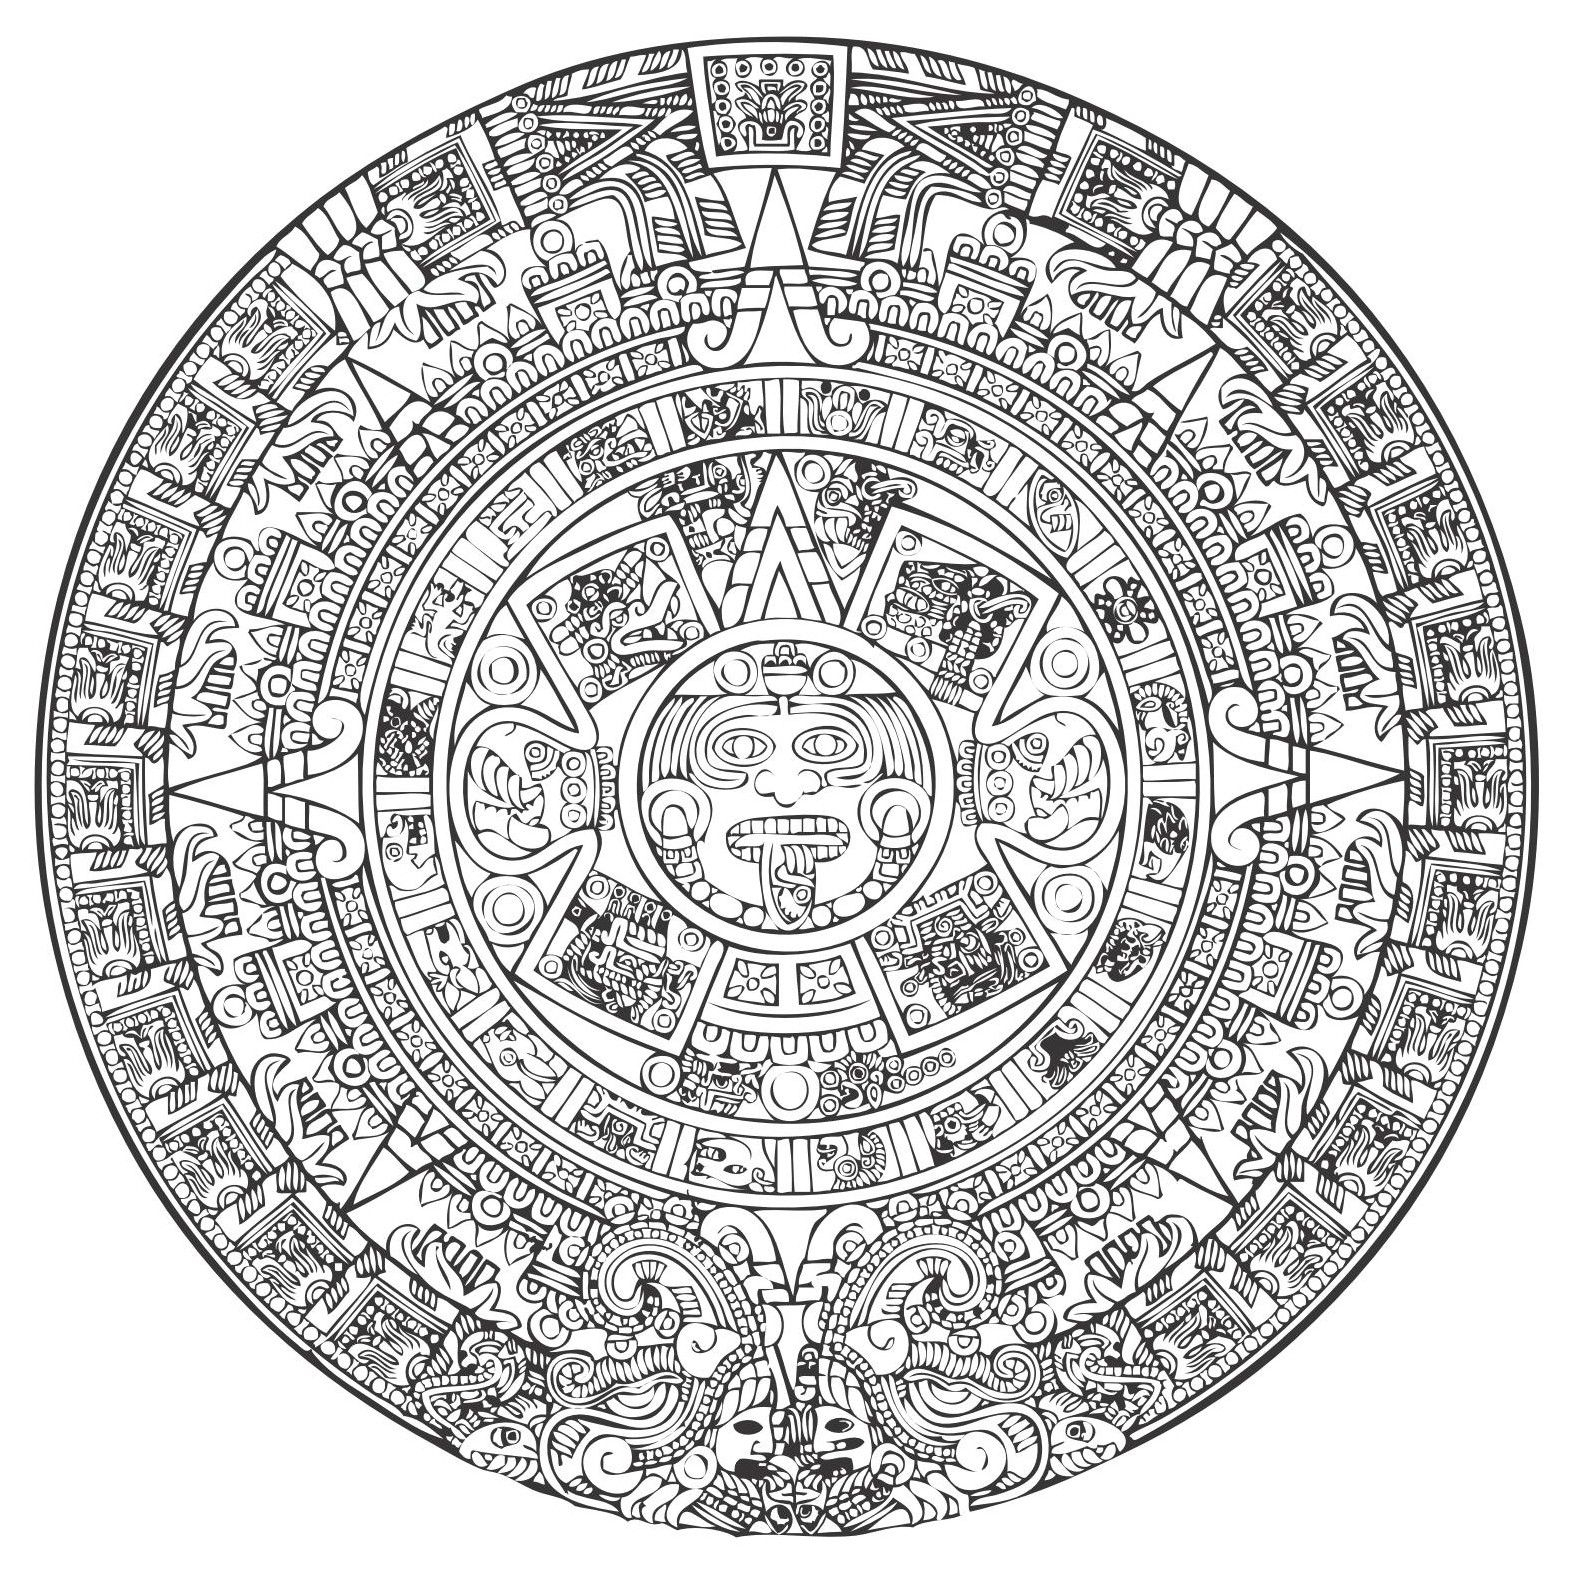 Aztec Calendar Vector [Eps File] - Accurate, Ancient, Antiquities intended for Aztec Calendar Printable Template